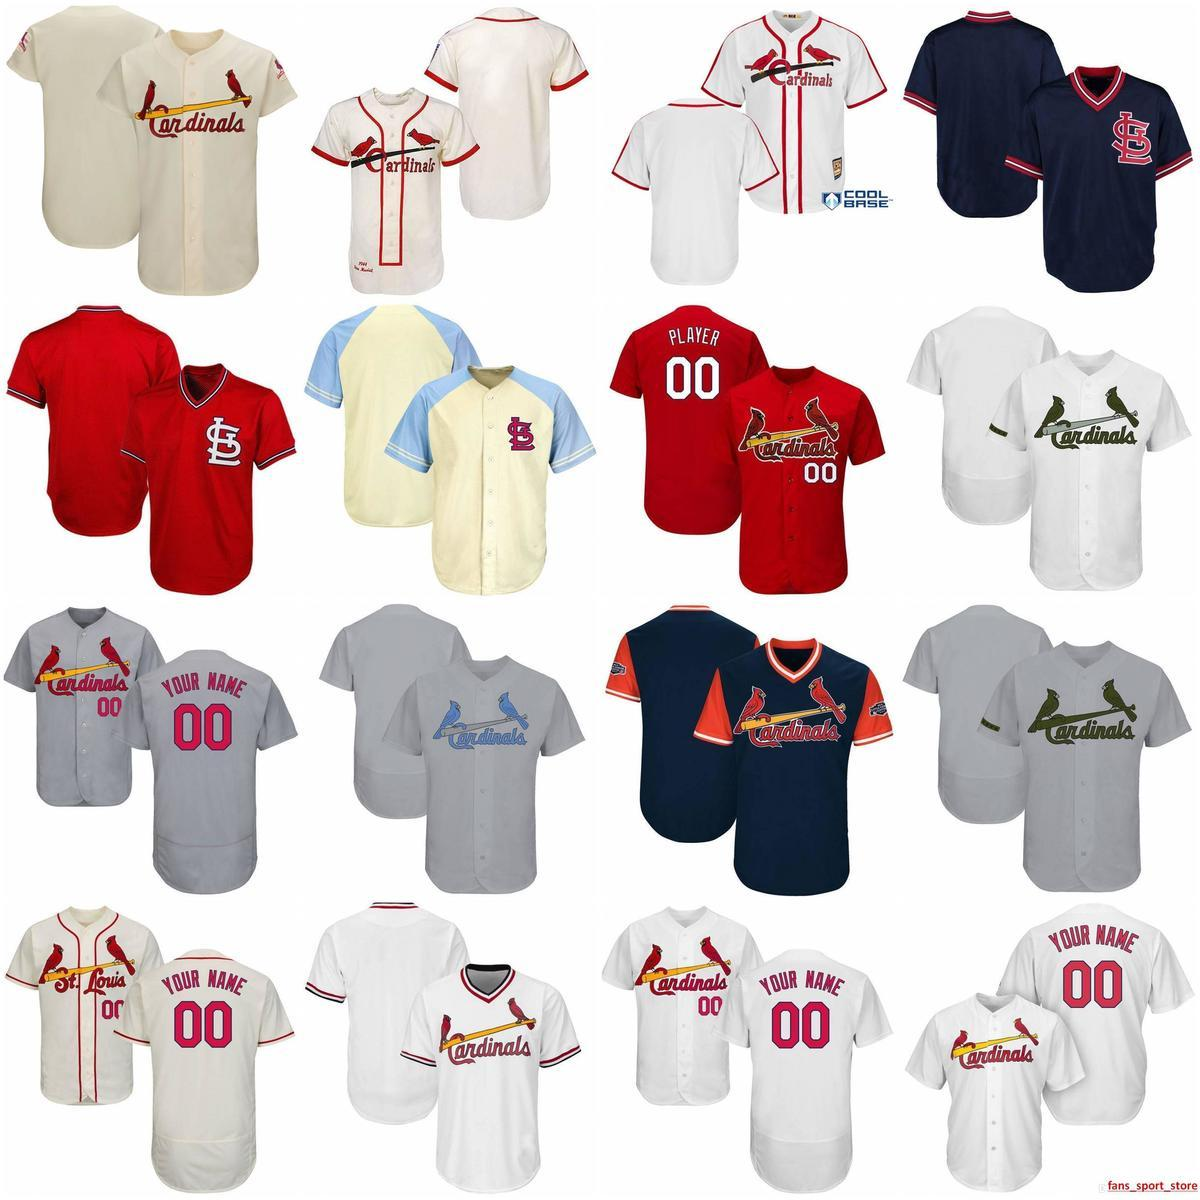 9a760125 2019 Custom Mens Womens Youth Cardinals Baseball Jerseys White Navy Gray  Cream Red Stitched any Name Any Number Flex Base Cool Base Jersey